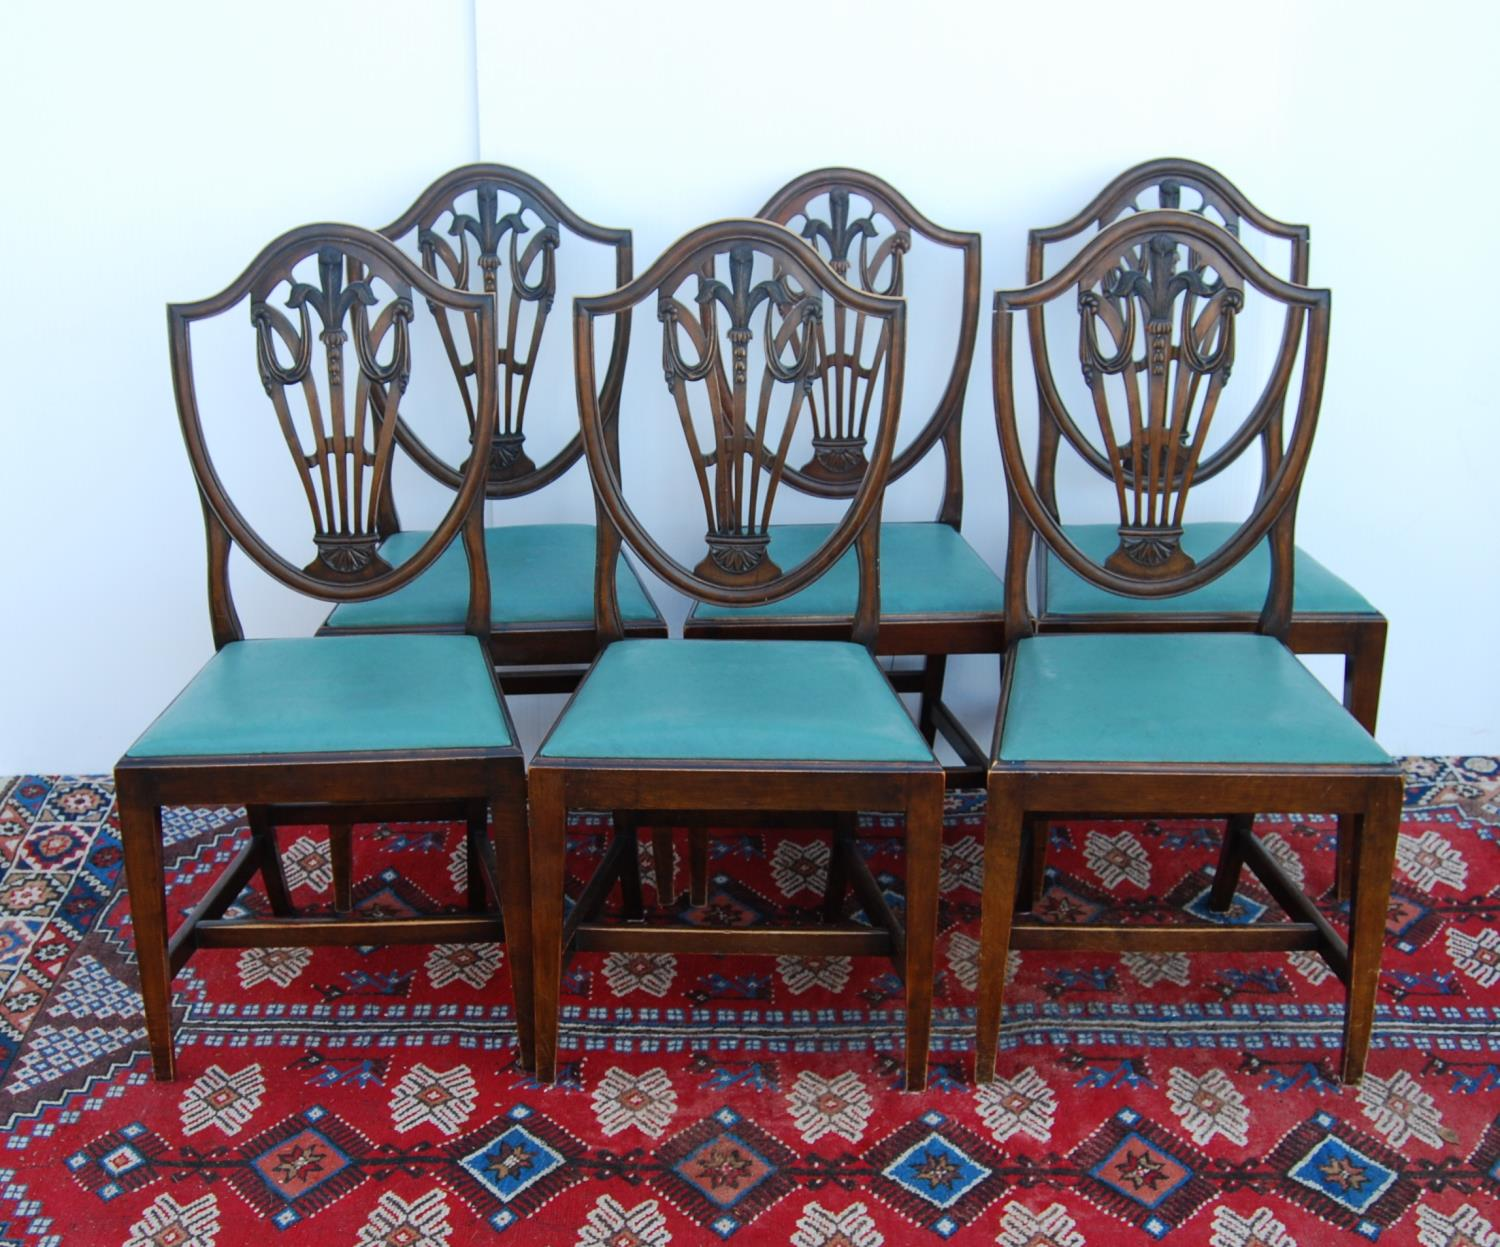 Set of mahogany dining chairs of George III design, each with moulded shield-shaped back, with - Image 2 of 3